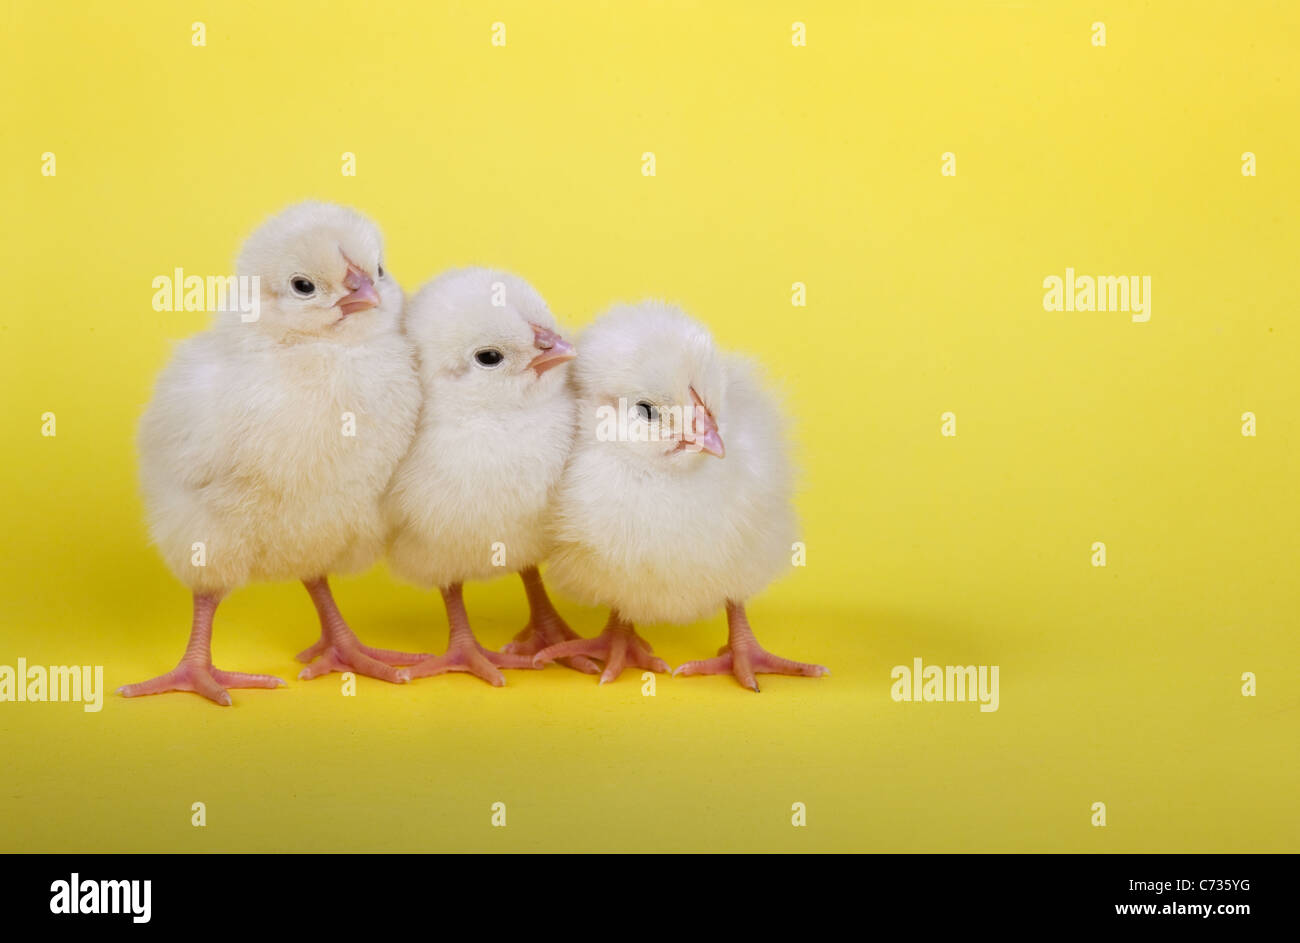 three newly hatched Chicks in a row on yellow background - Stock Image